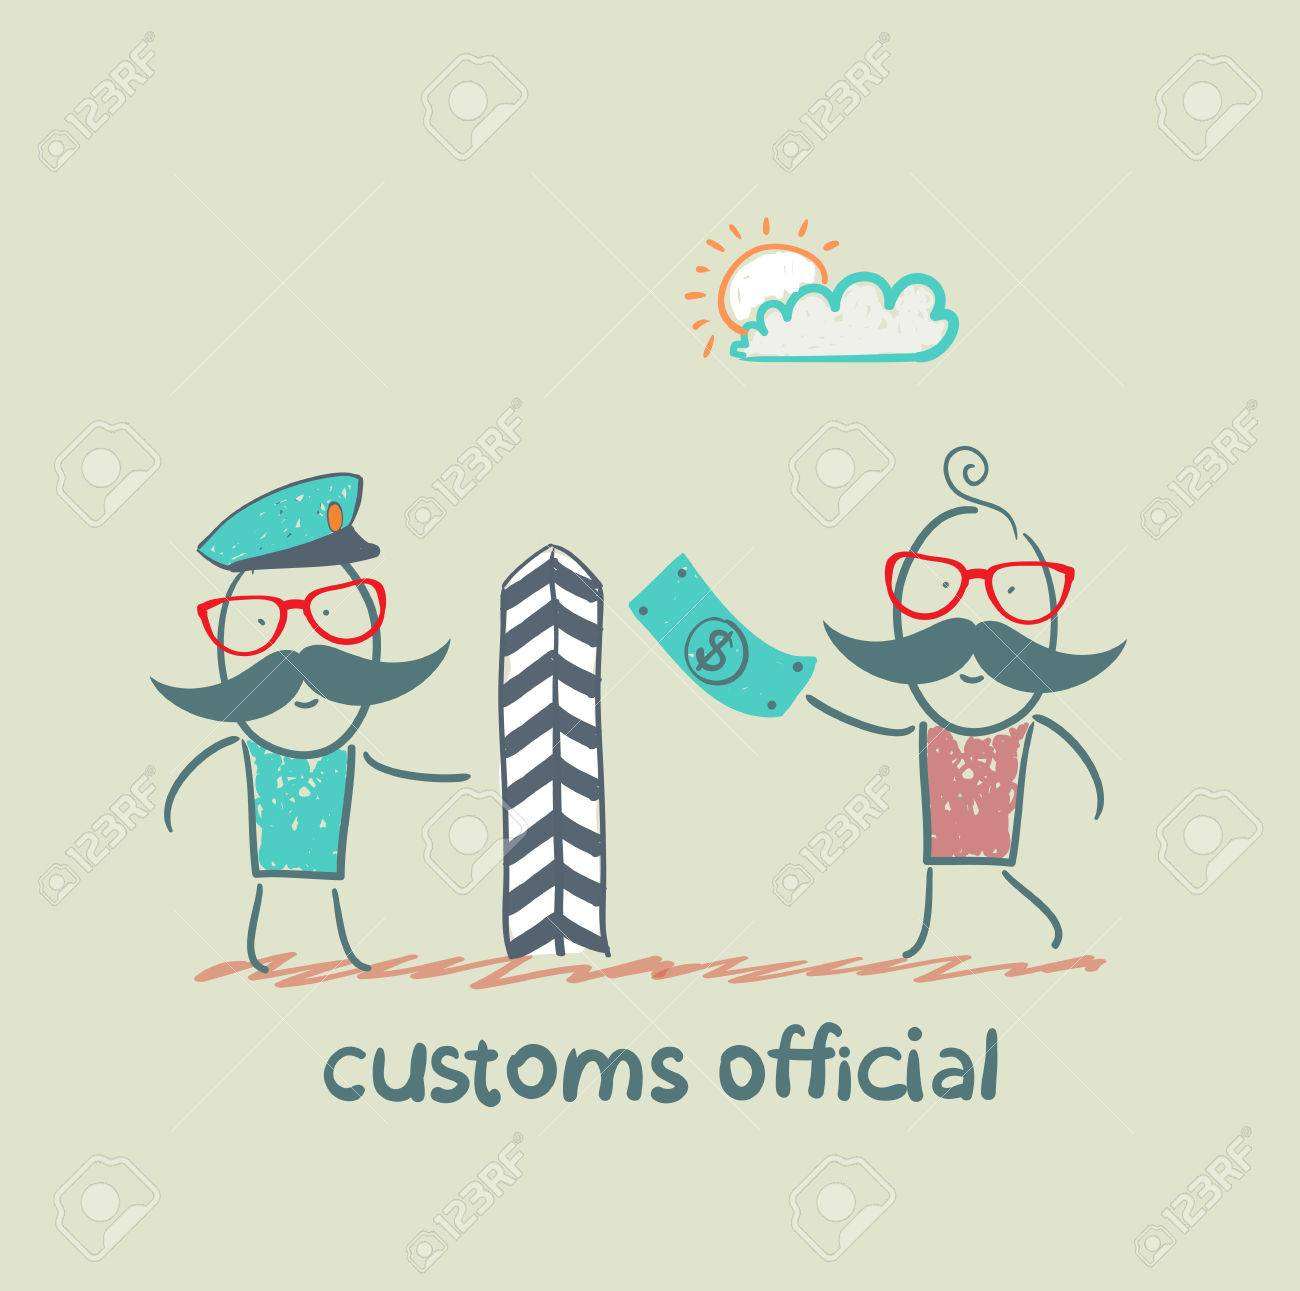 customs officer takes money from the man Stock Vector - 23068127